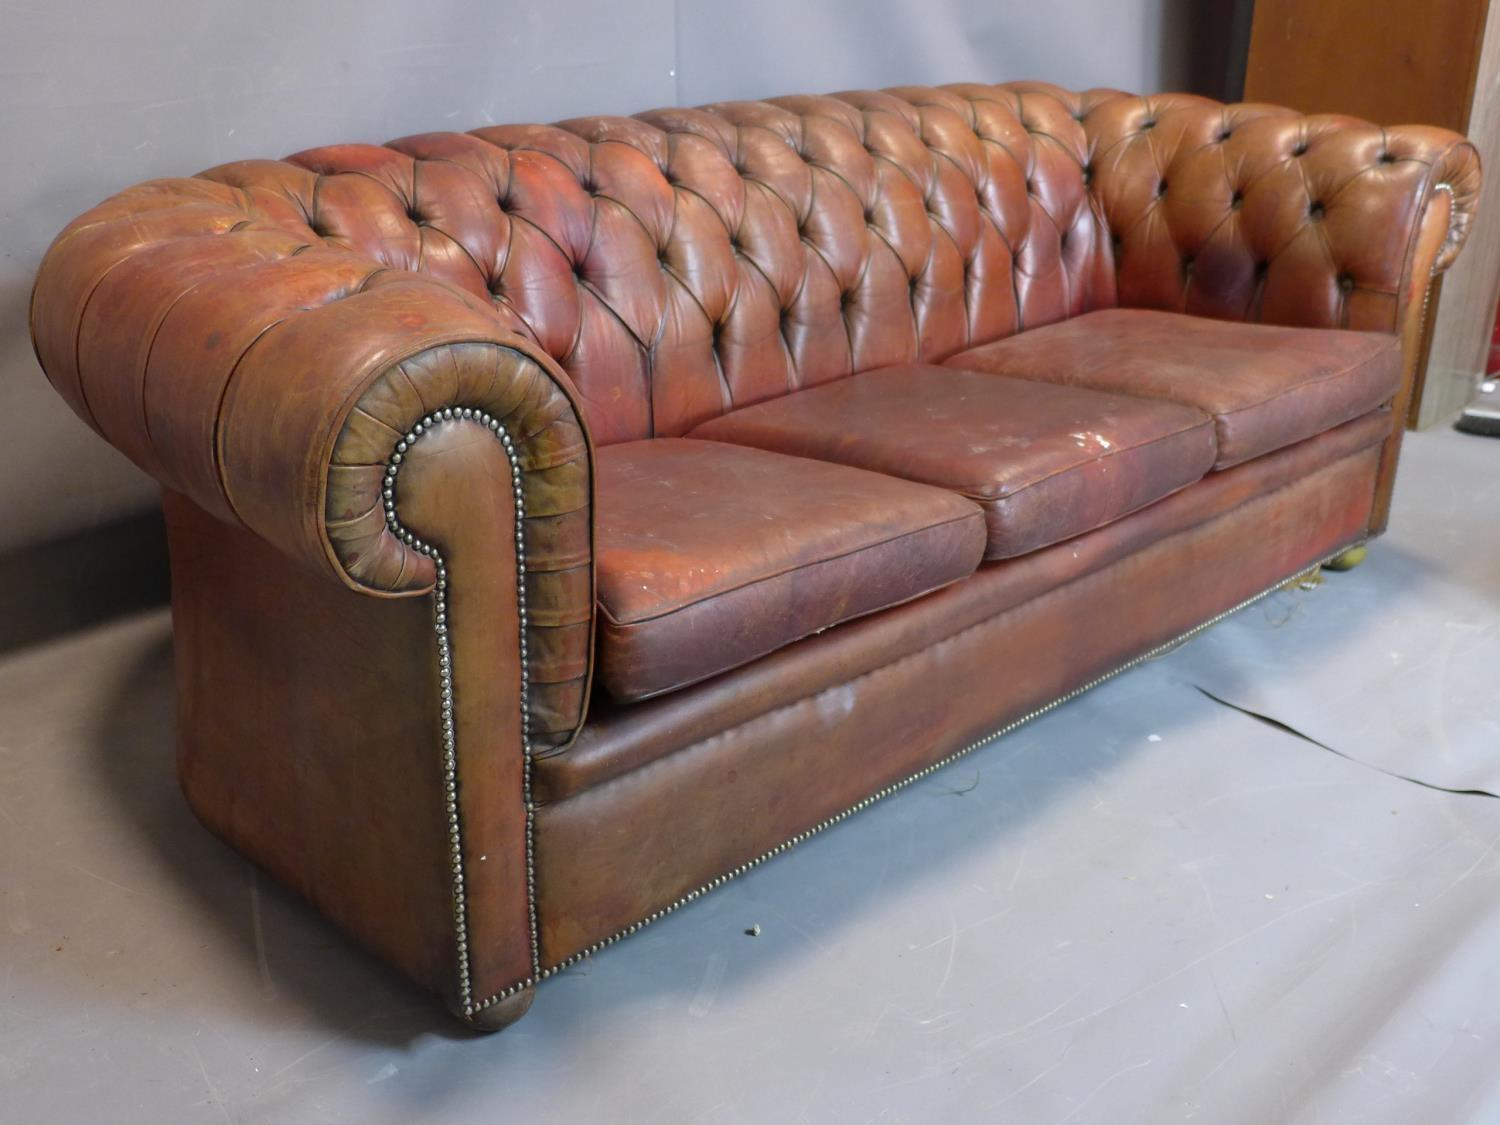 A three seater leather Chesterfield sofa, with button back upholstery, heavily worn - Image 2 of 3